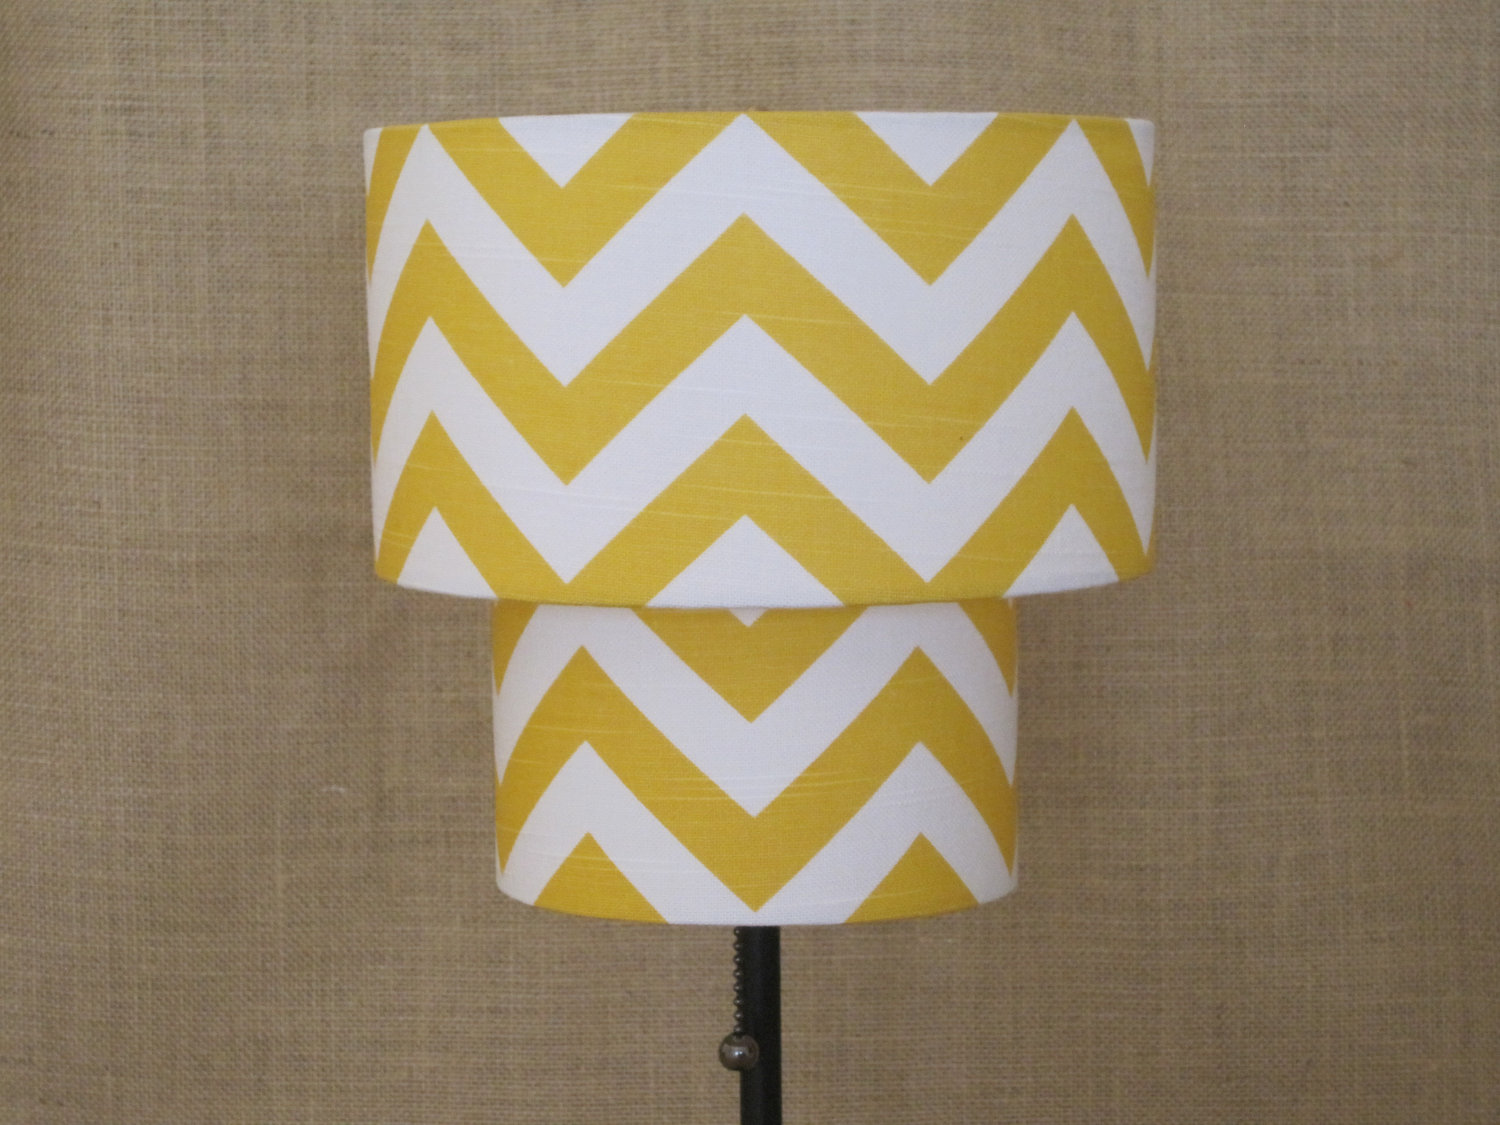 Drum lamp shades lighten up your day midcityeast yellow and white pattern for drum lamp shades in appealing floor lamp near grey wall aloadofball Gallery